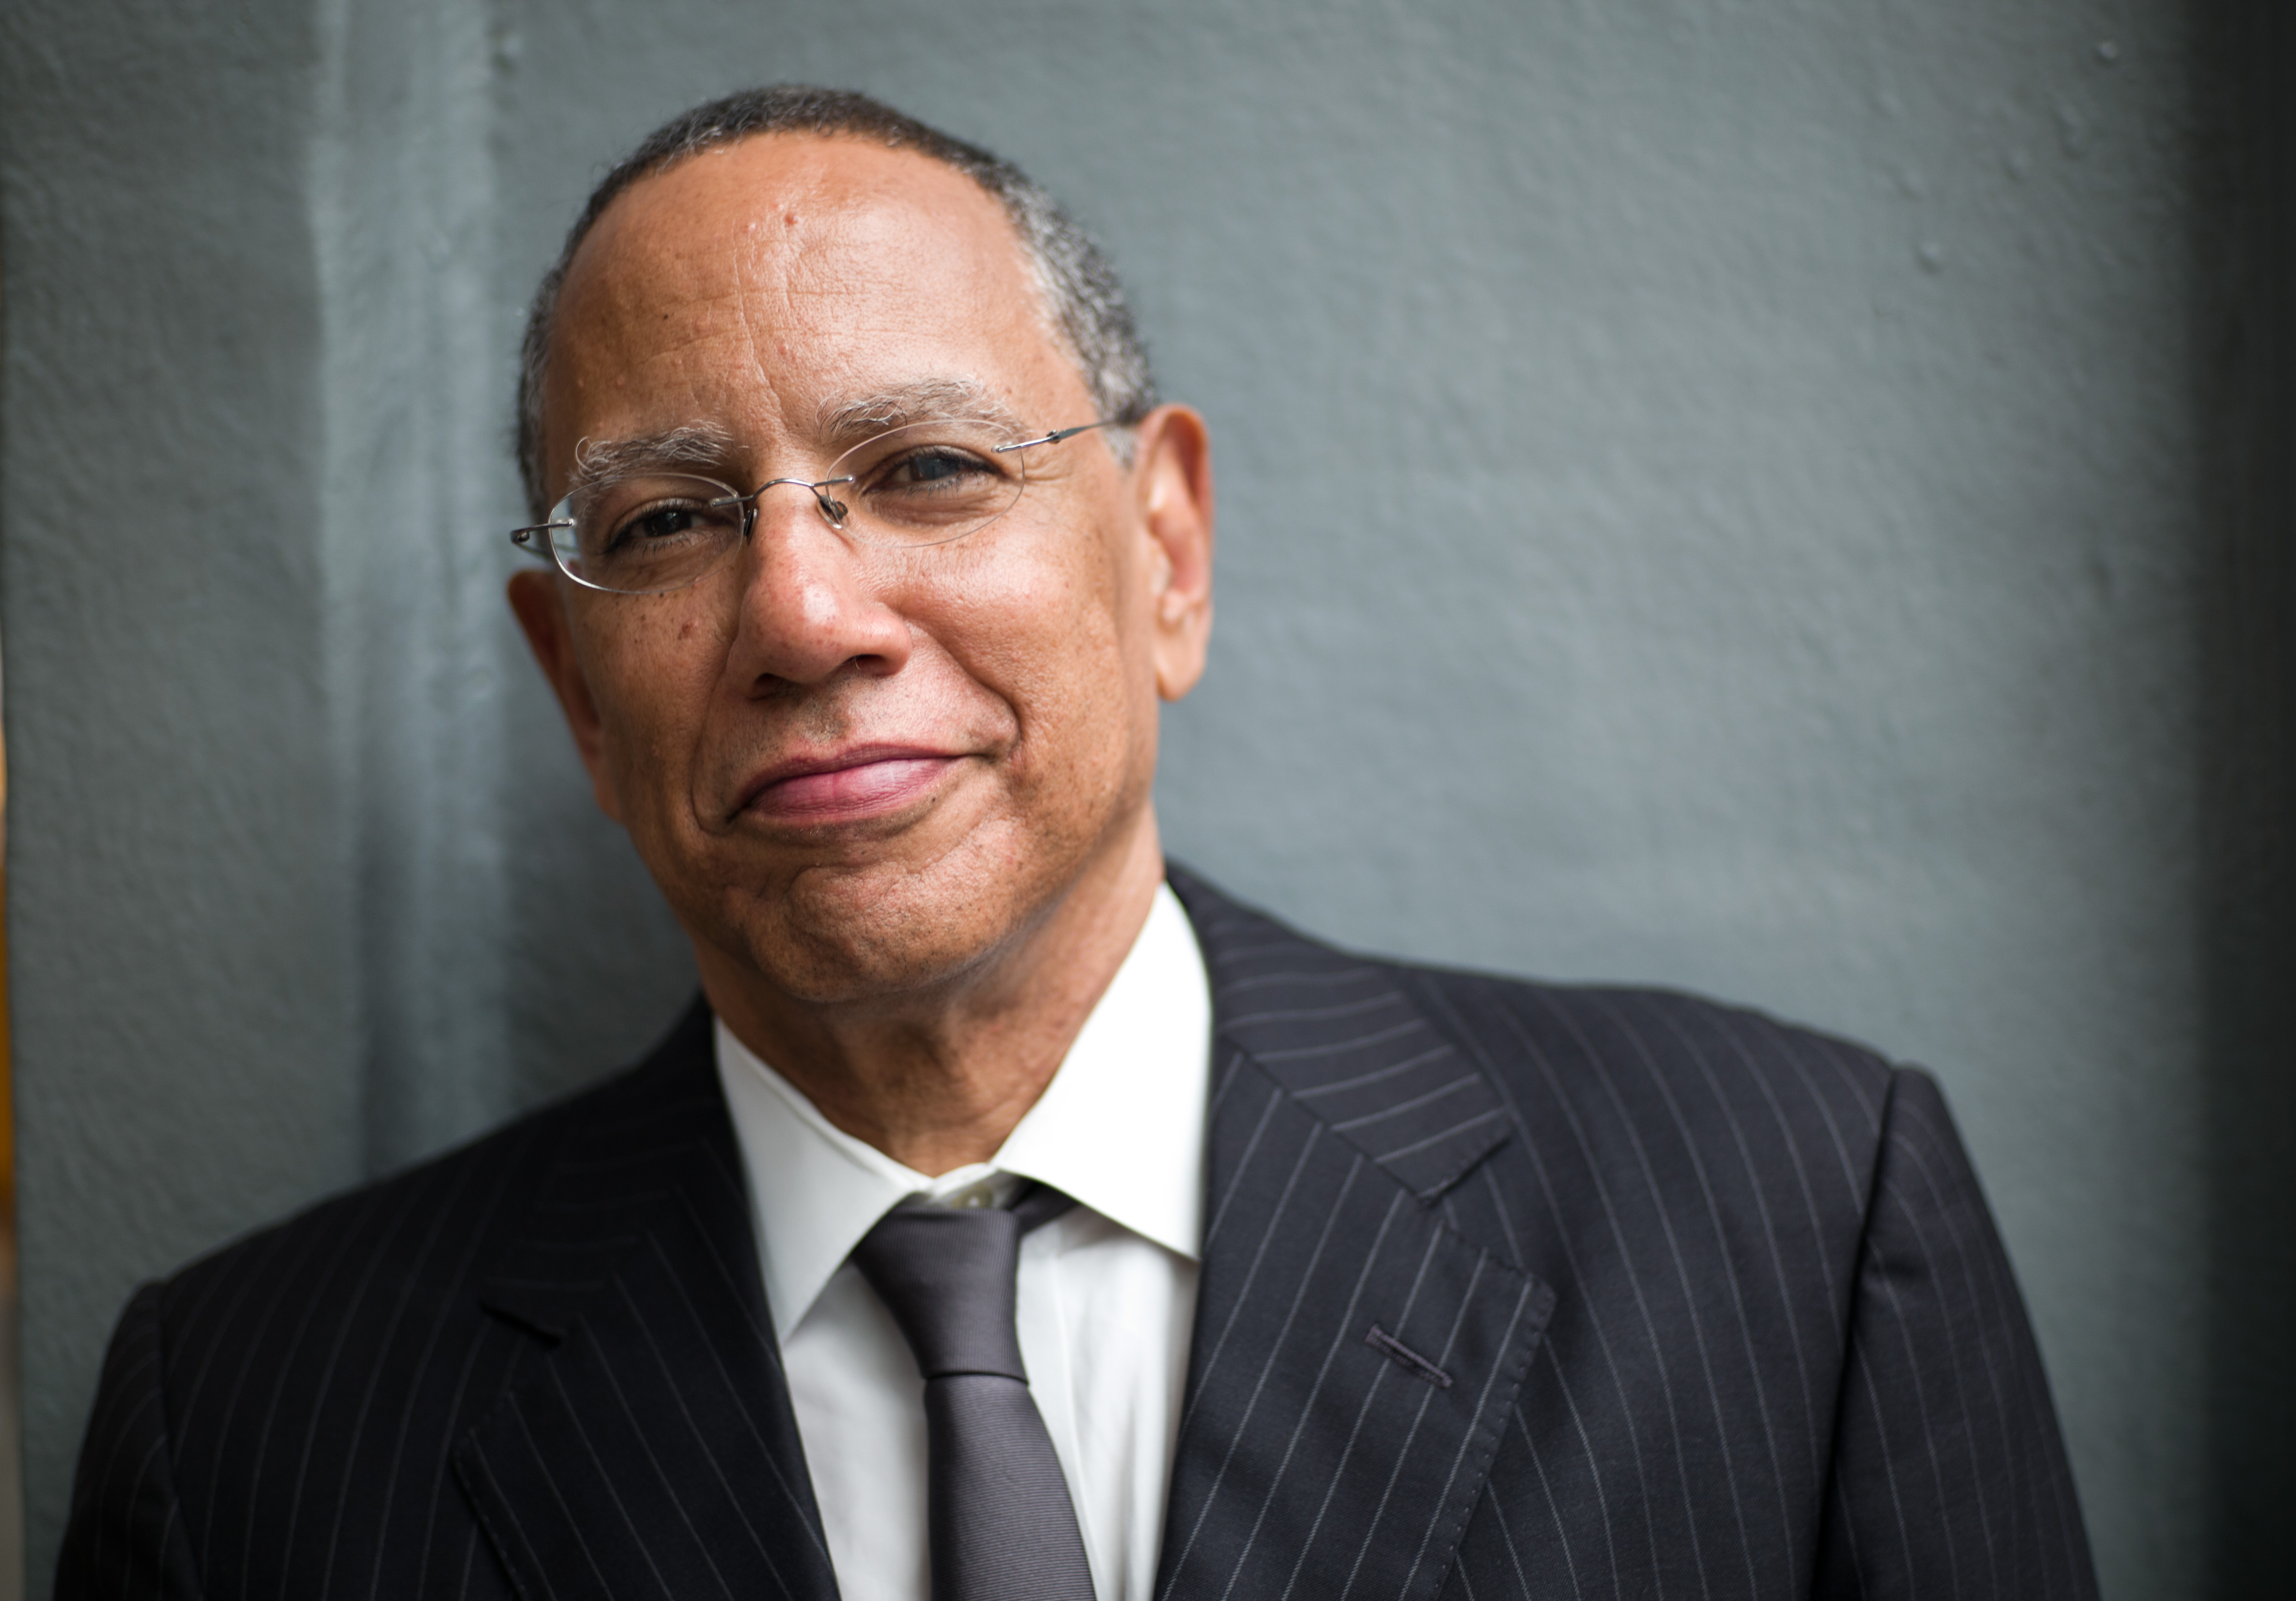 Presenting: an evening with Dean Baquet, executive editor of The New York Times